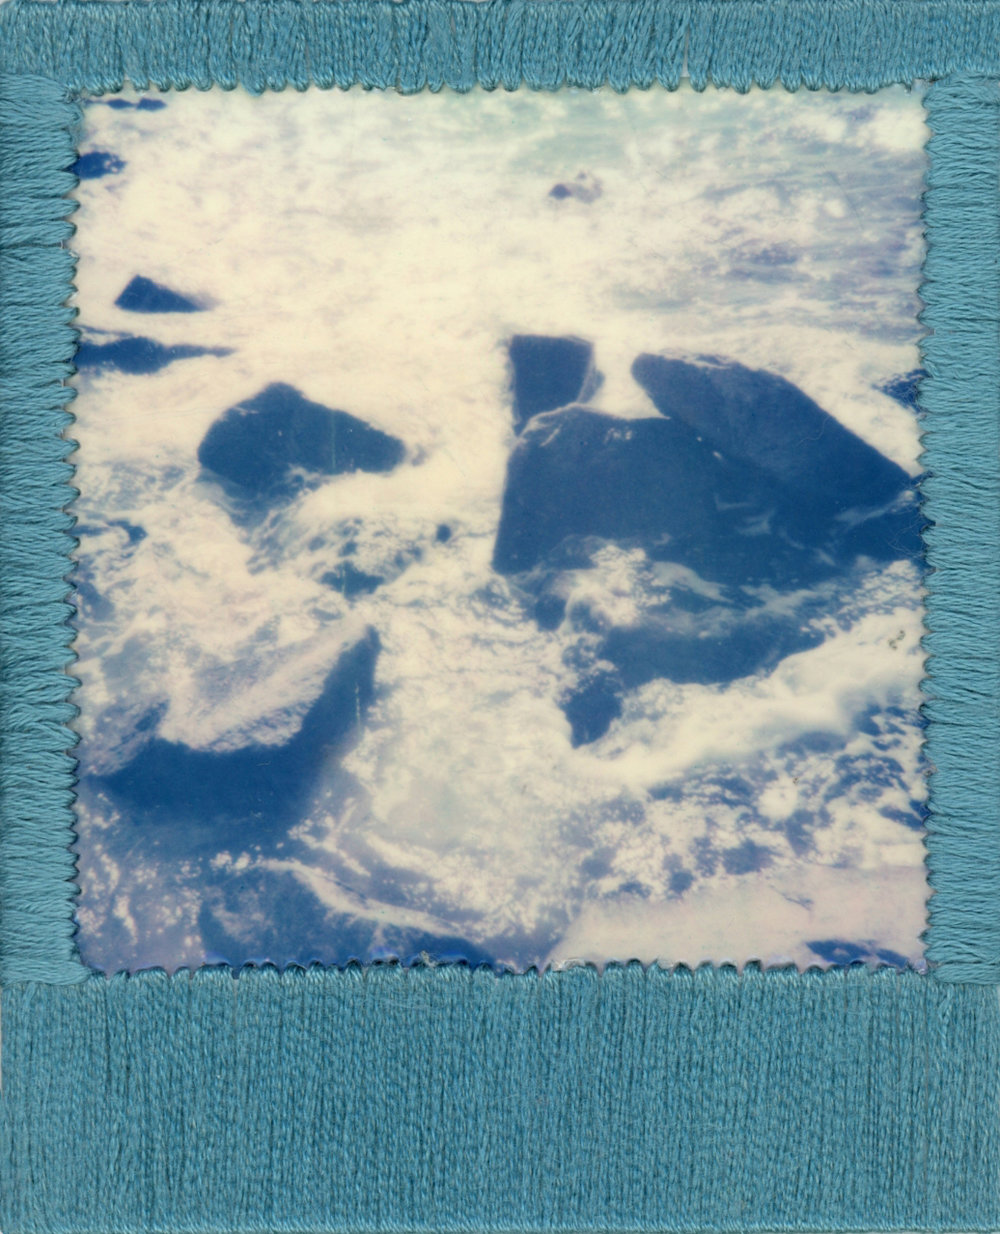 emma j starr embroidered polaroid 'the distance from here' TSKW key west artist.jpg